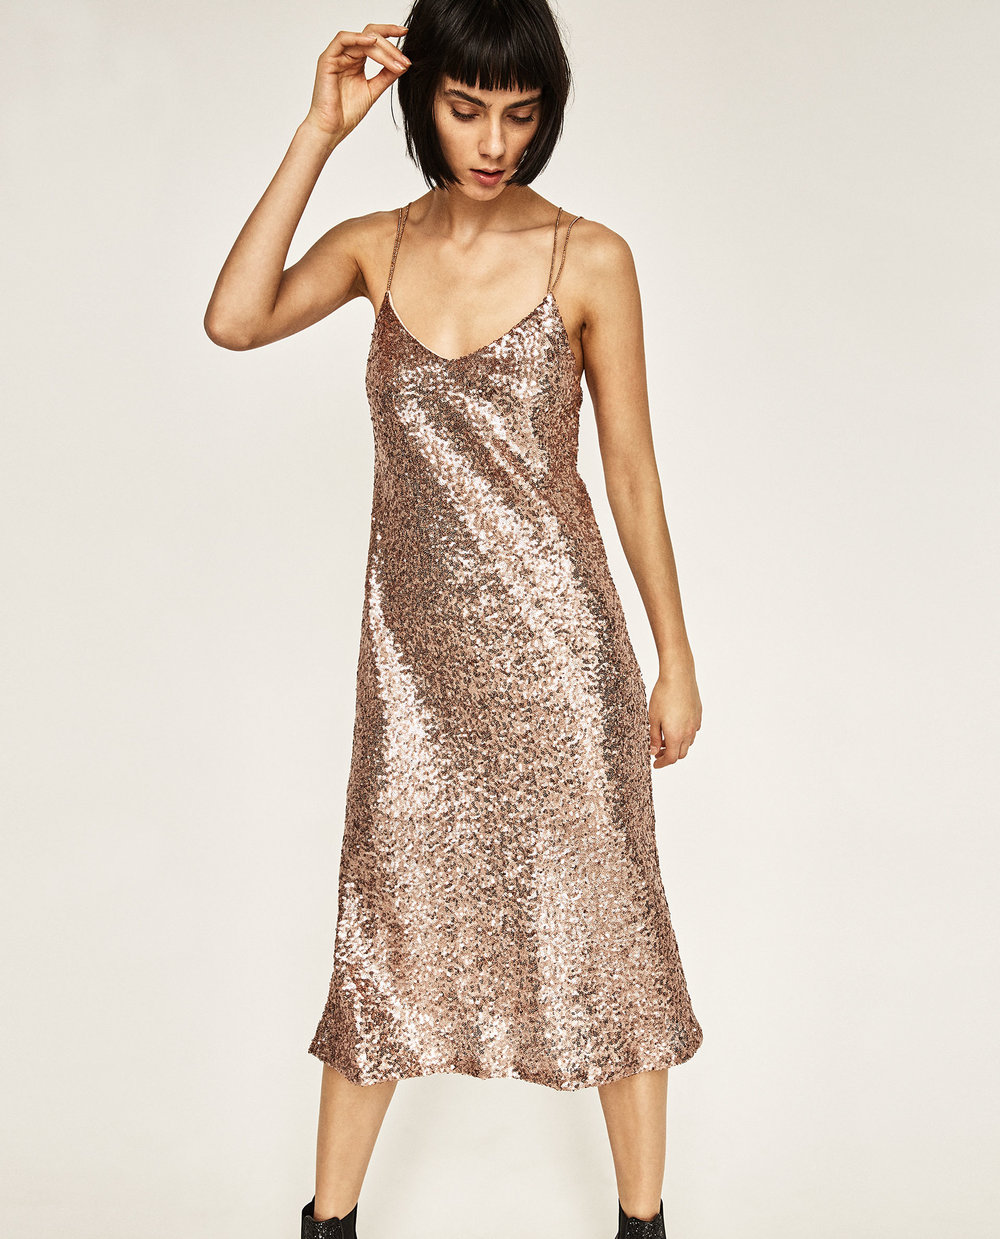 Photo via Zara.com   Zara, Long Sequinned Dress, $35.99